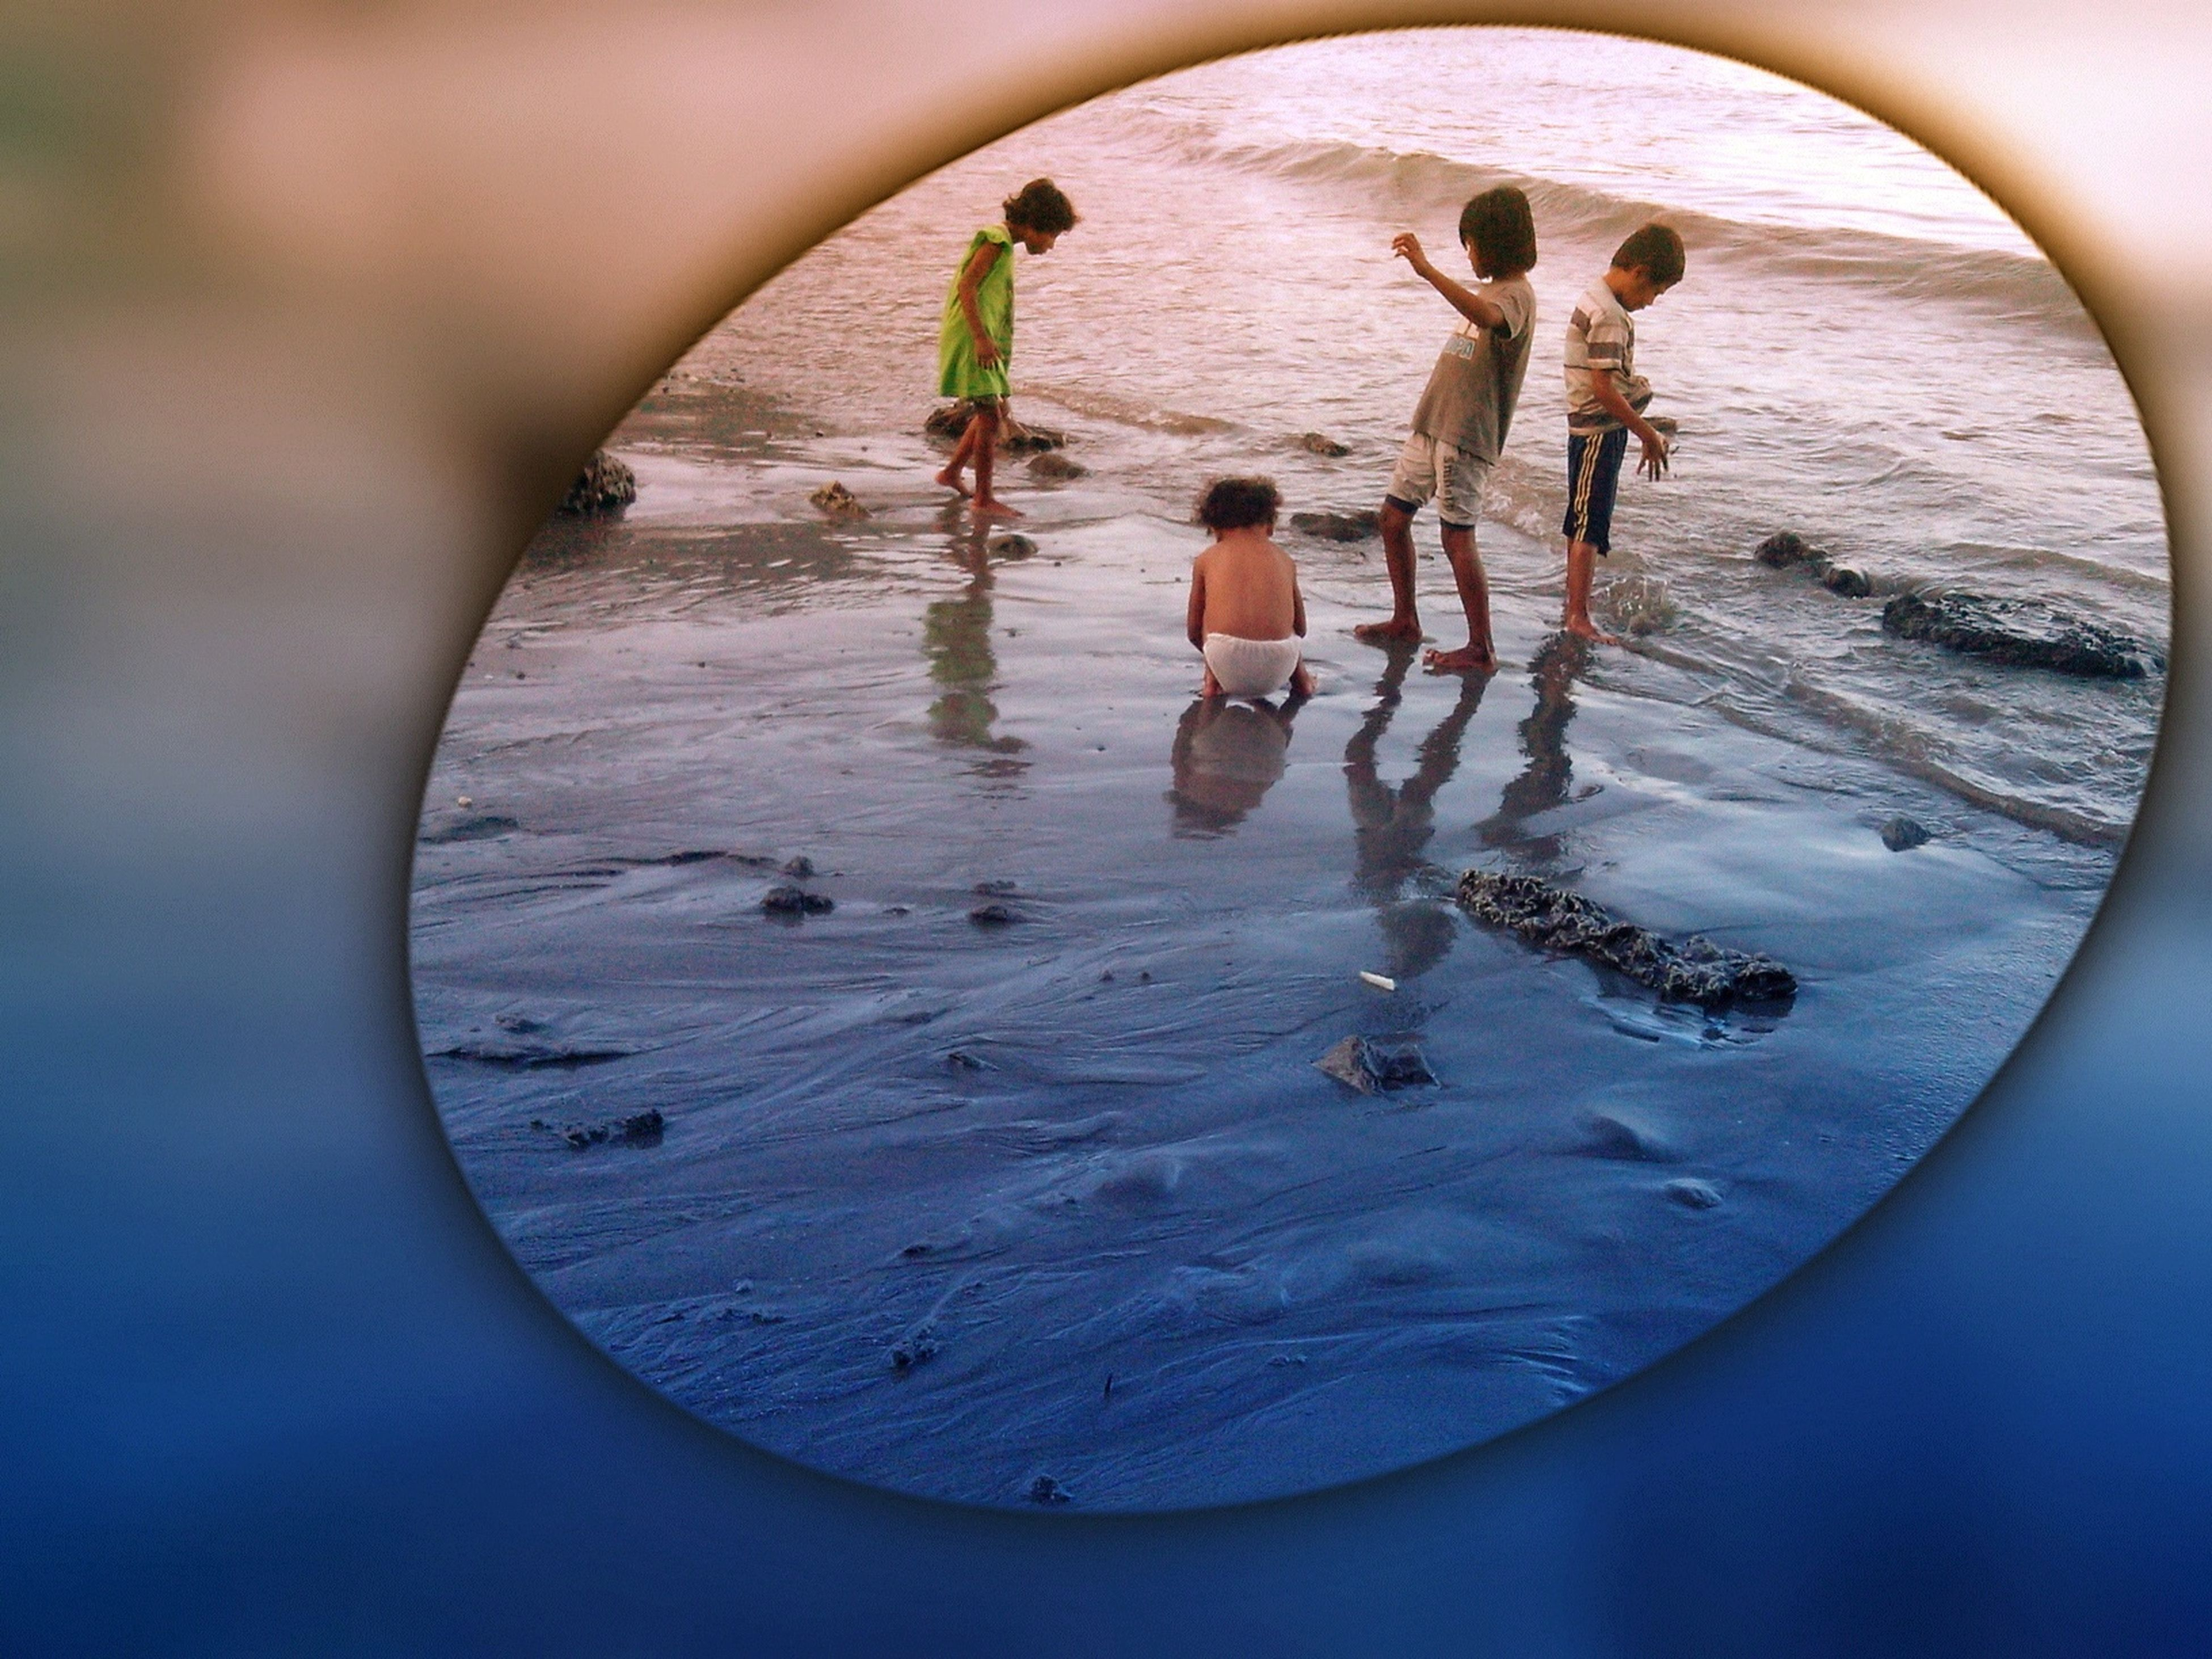 water, beach, childhood, leisure activity, lifestyles, sea, boys, sand, playing, fun, shore, enjoyment, full length, playful, vacations, day, reflection, girls